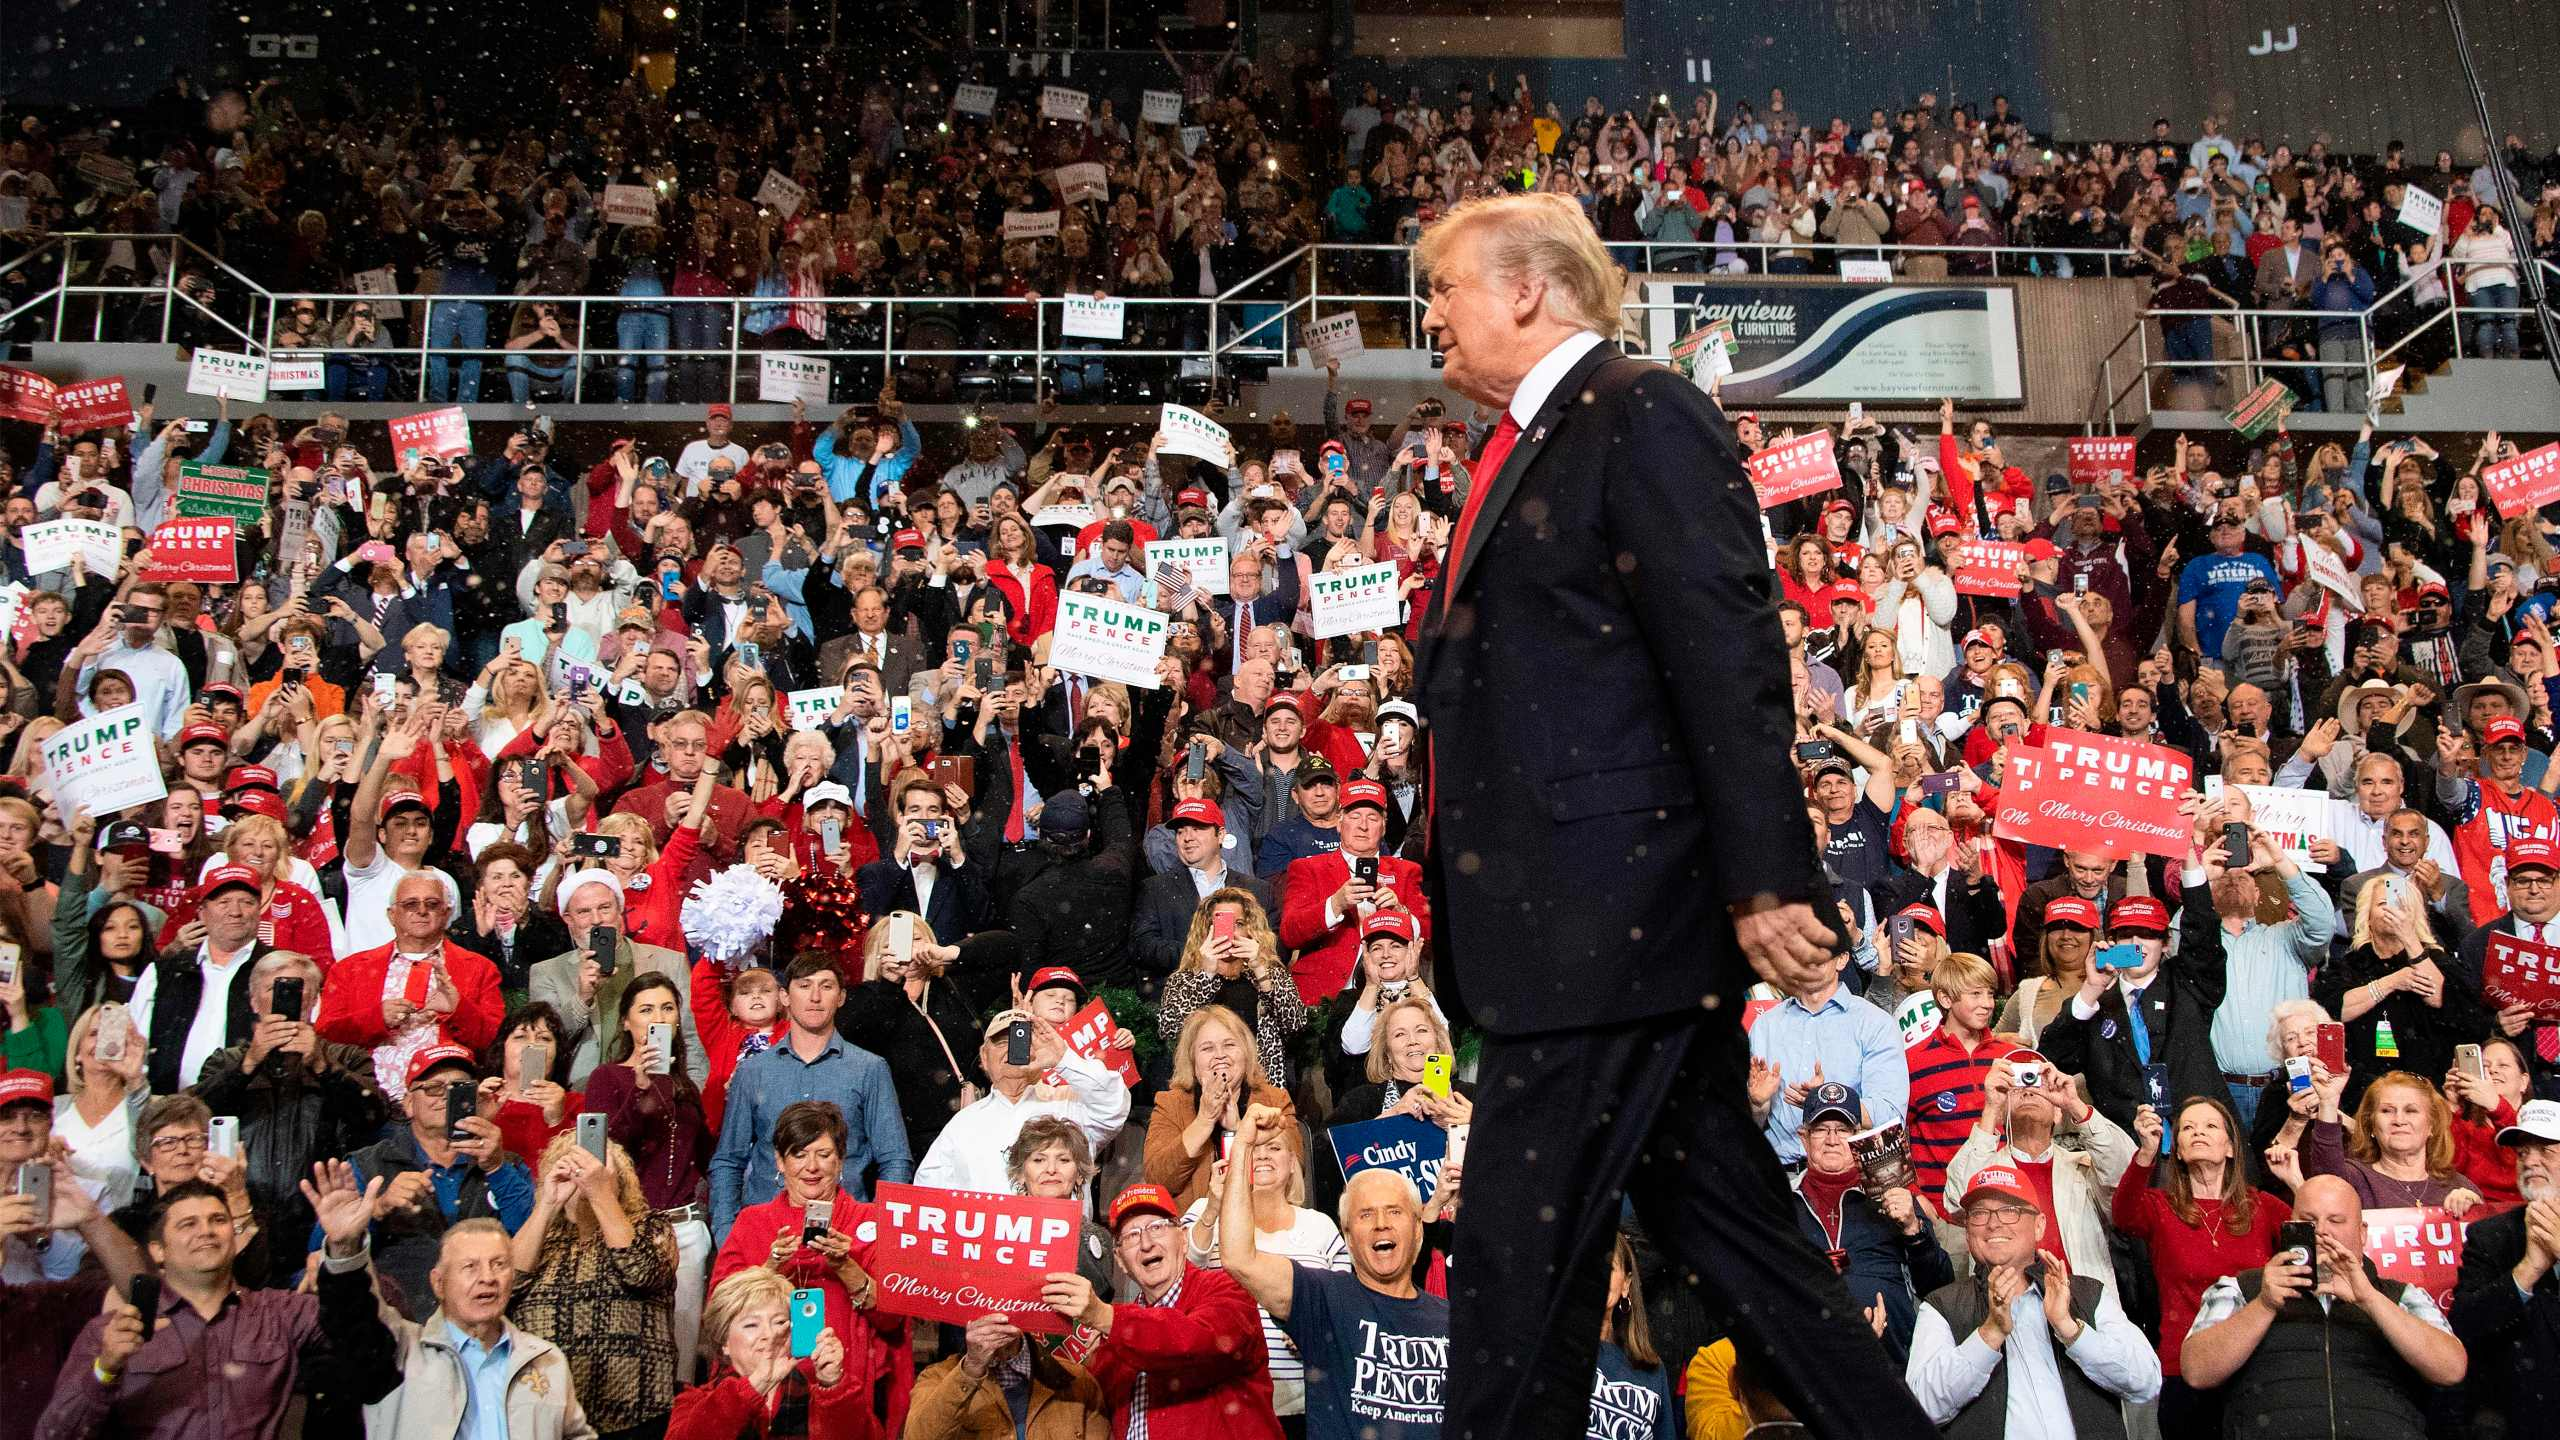 President Donald Trump walks on stage at a Make America Great Again rally in Biloxi, Mississippi, on November 26, 2018. (Credit: JIM WATSON/AFP/Getty Images)